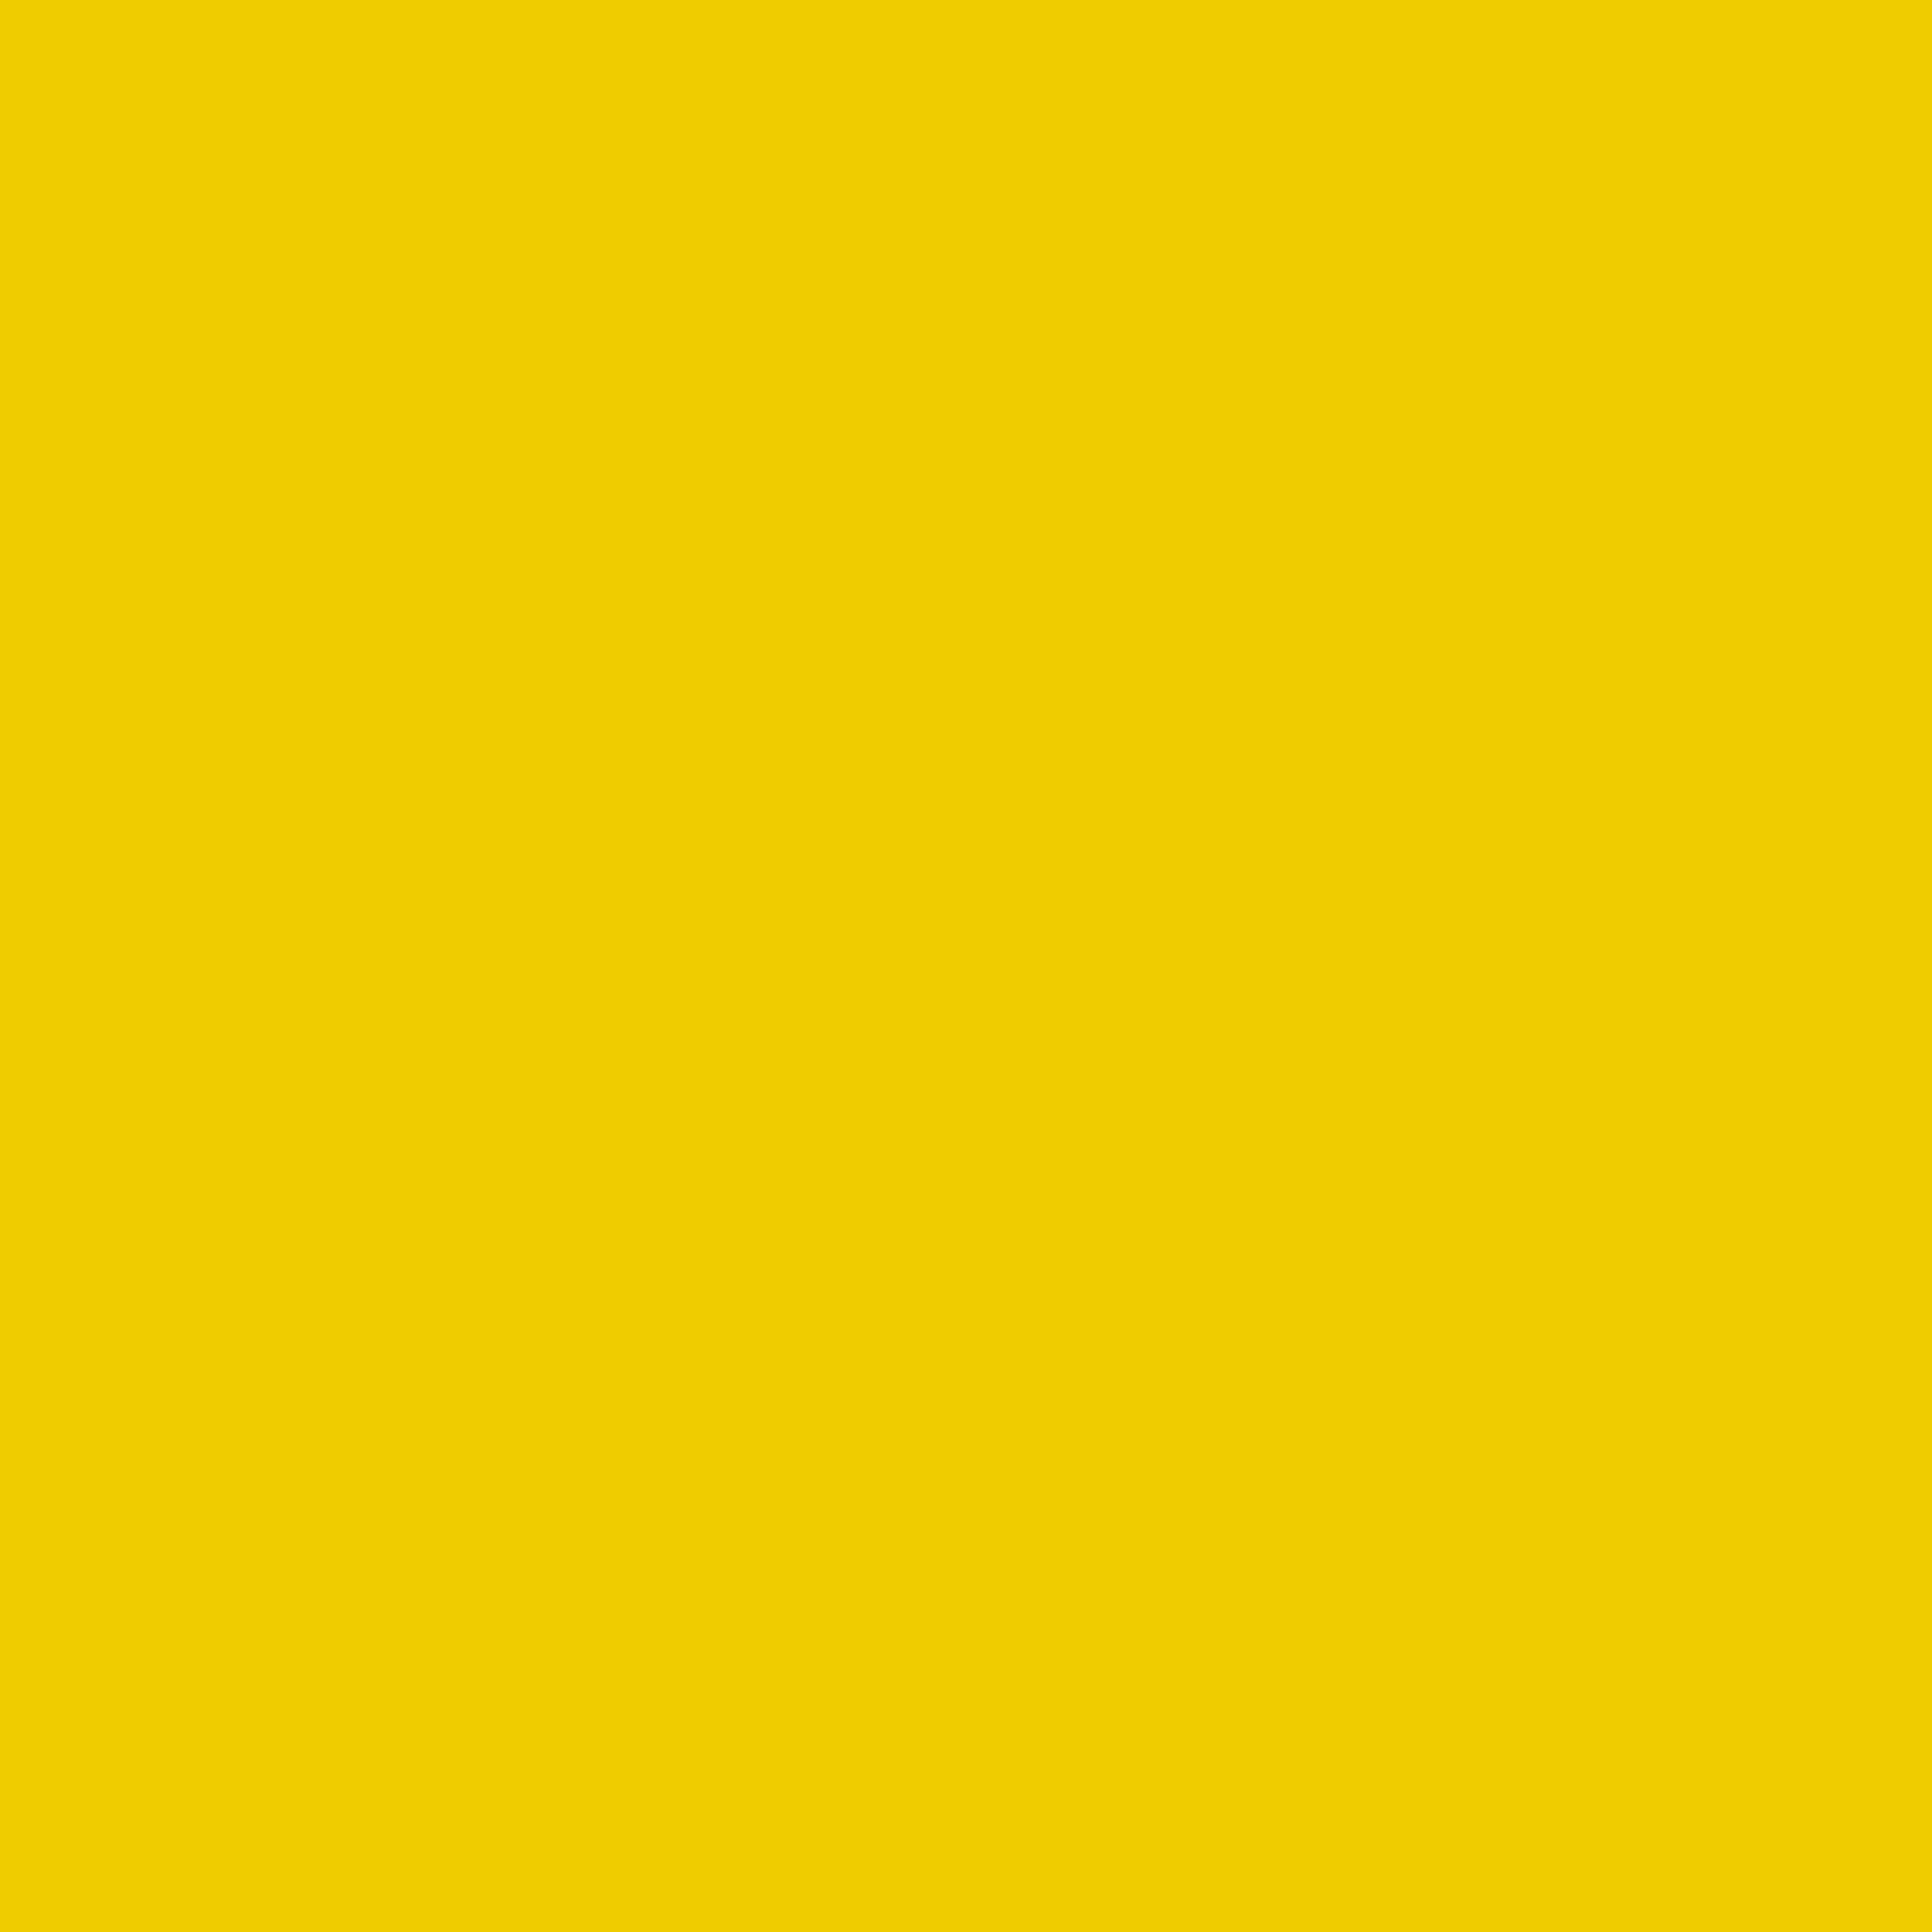 2048x2048 Yellow Munsell Solid Color Background